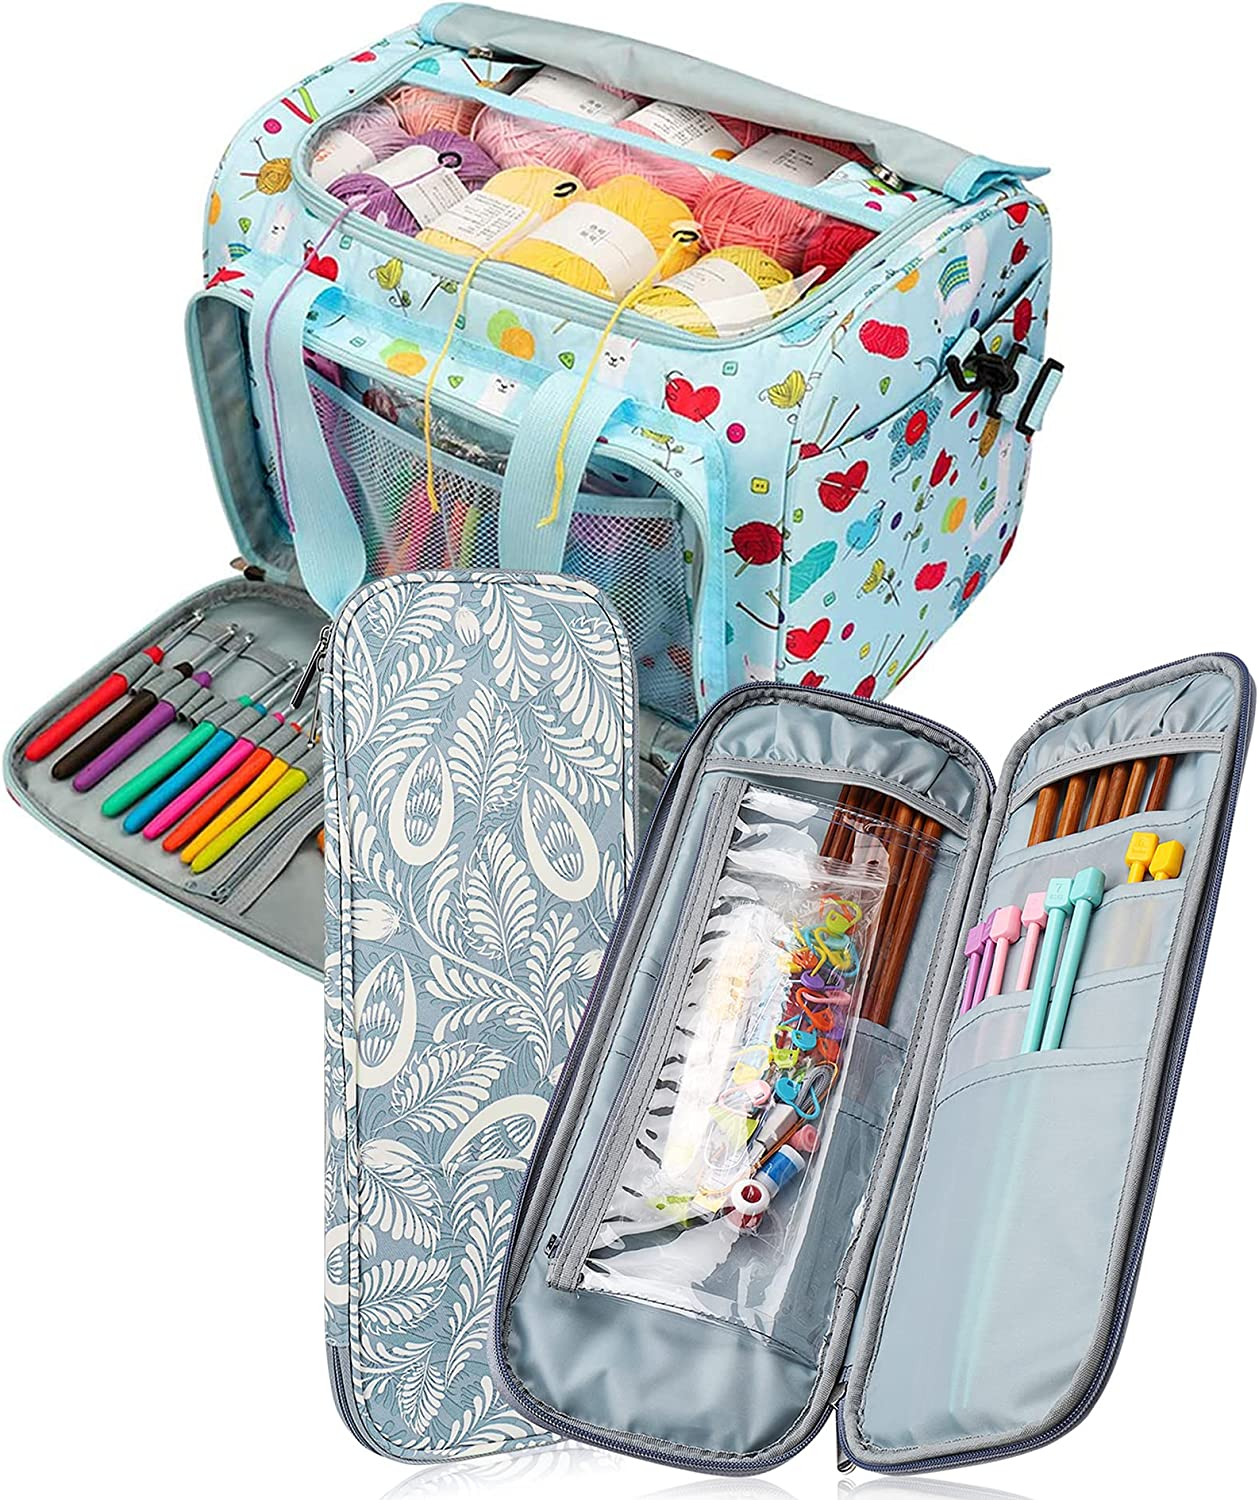 Coopay Knitting Needle Case Outlet sale feature Yarn Price reduction Travel S Bag Totes Organizer